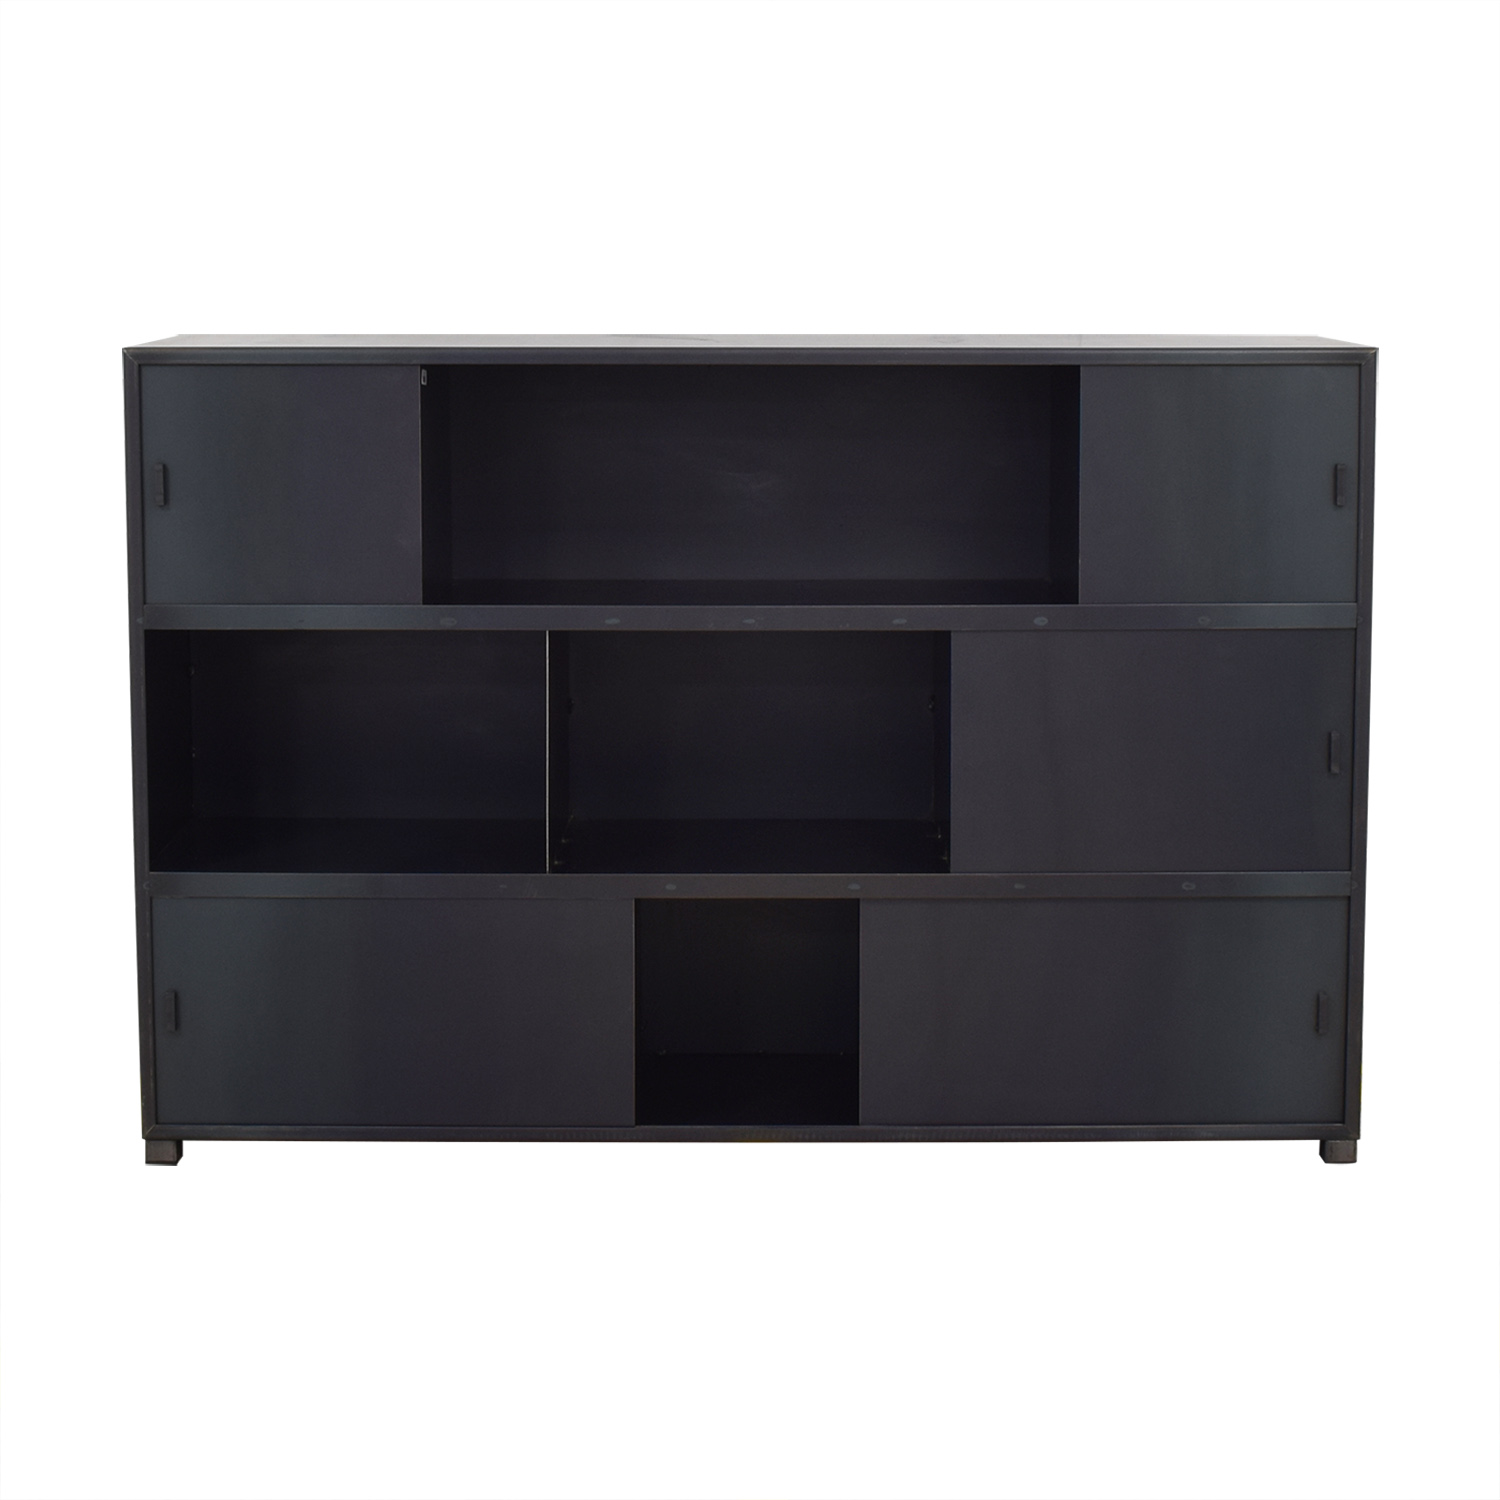 ABC Carpet & Home ABC Carpet & Home Bookcase with Sliding Doors price